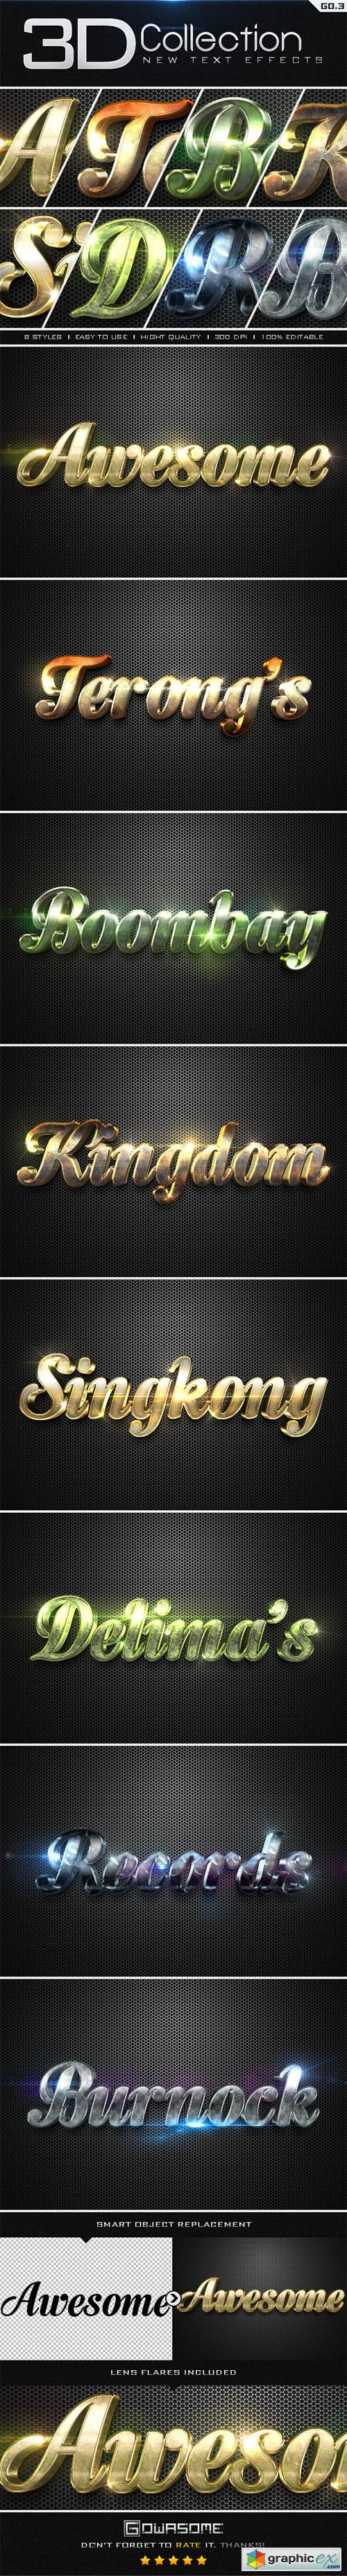 New 3D Collection Text Effects GO.3